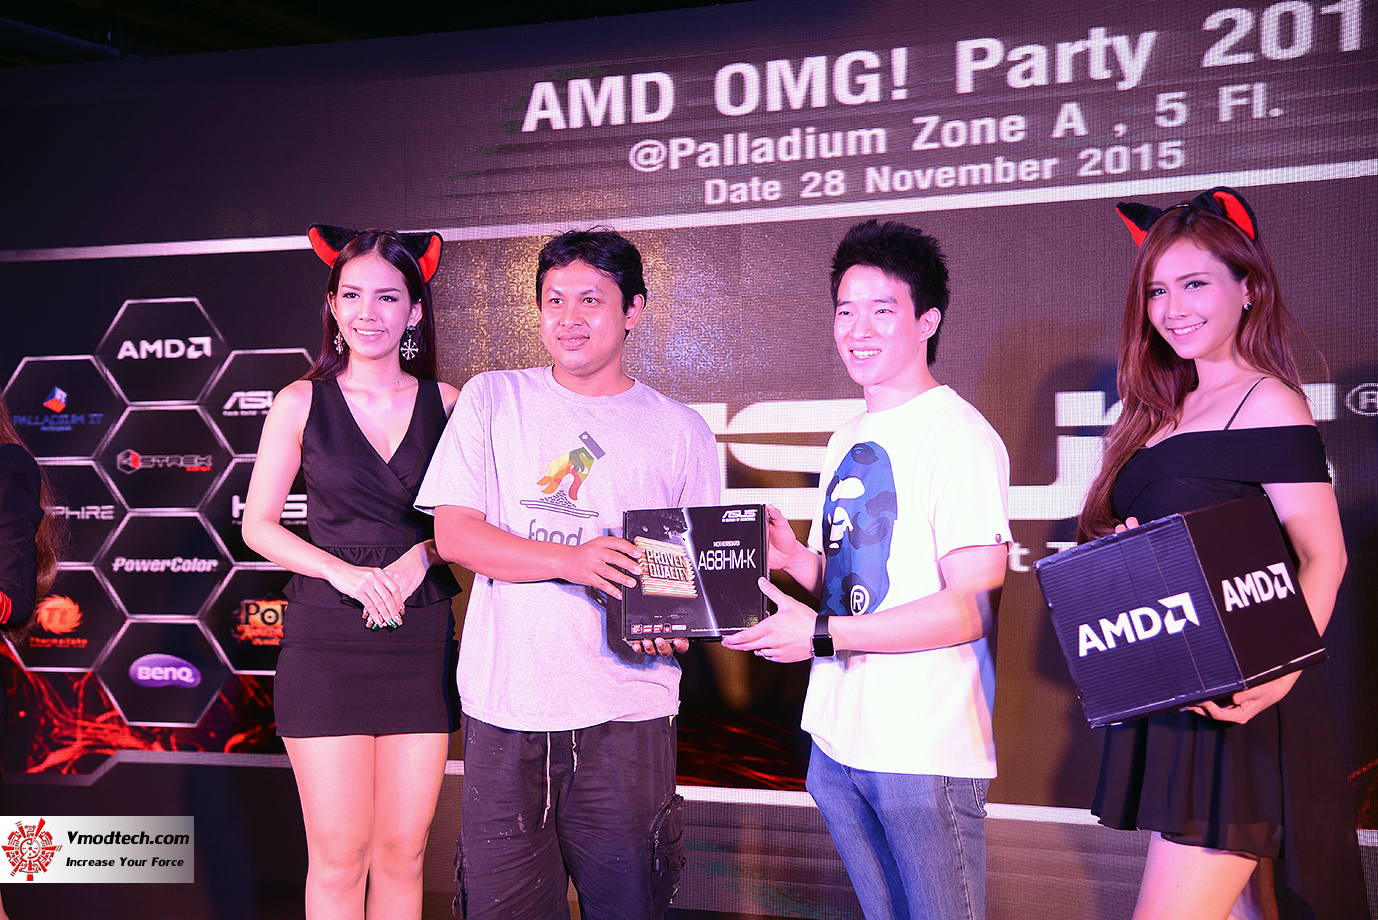 dsc 7160 AMD OMG! Party 2015 (AMD Overclock Modding Gaming Party 2015)